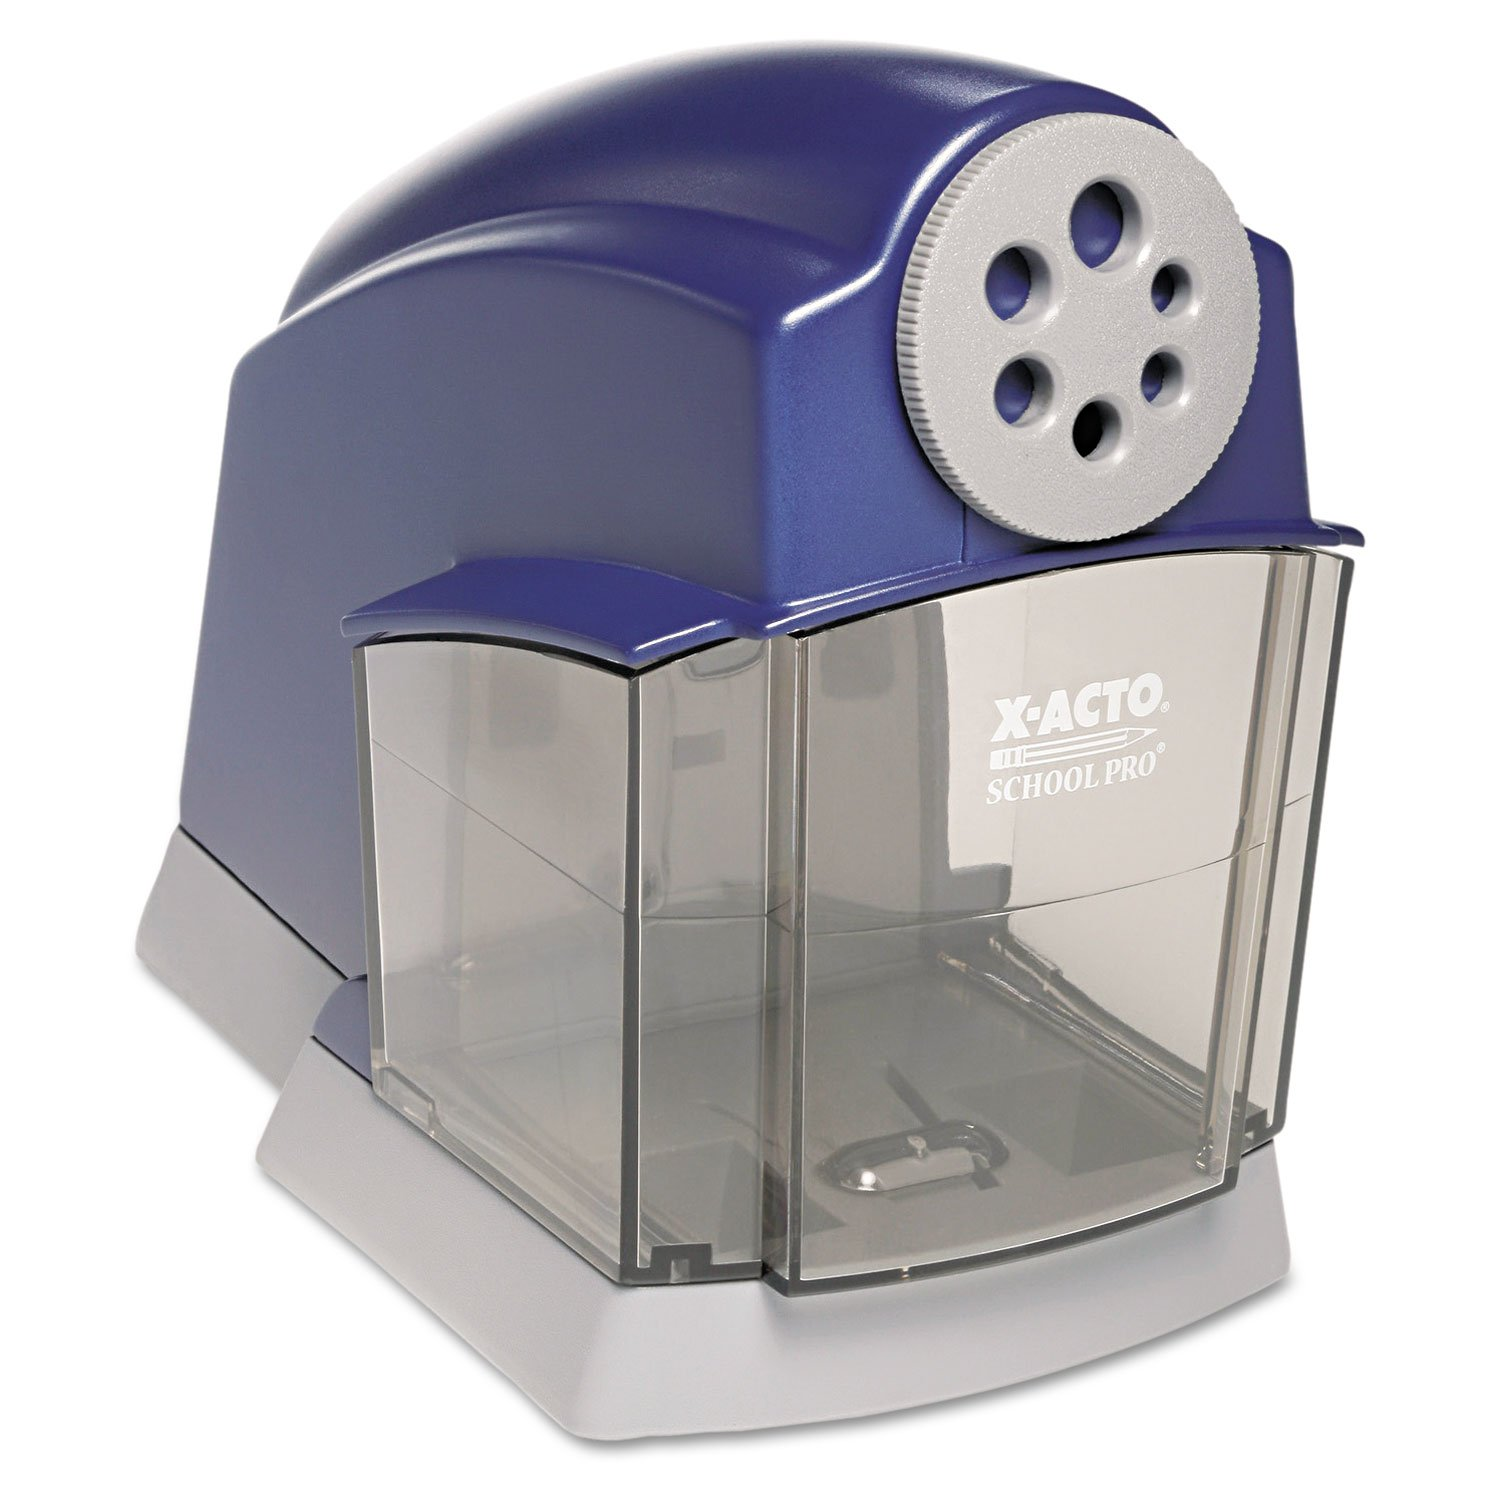 Elmers School Pro Electric Pencil Sharpener - Desktop - 6 Hole(s) - Blue, Gray